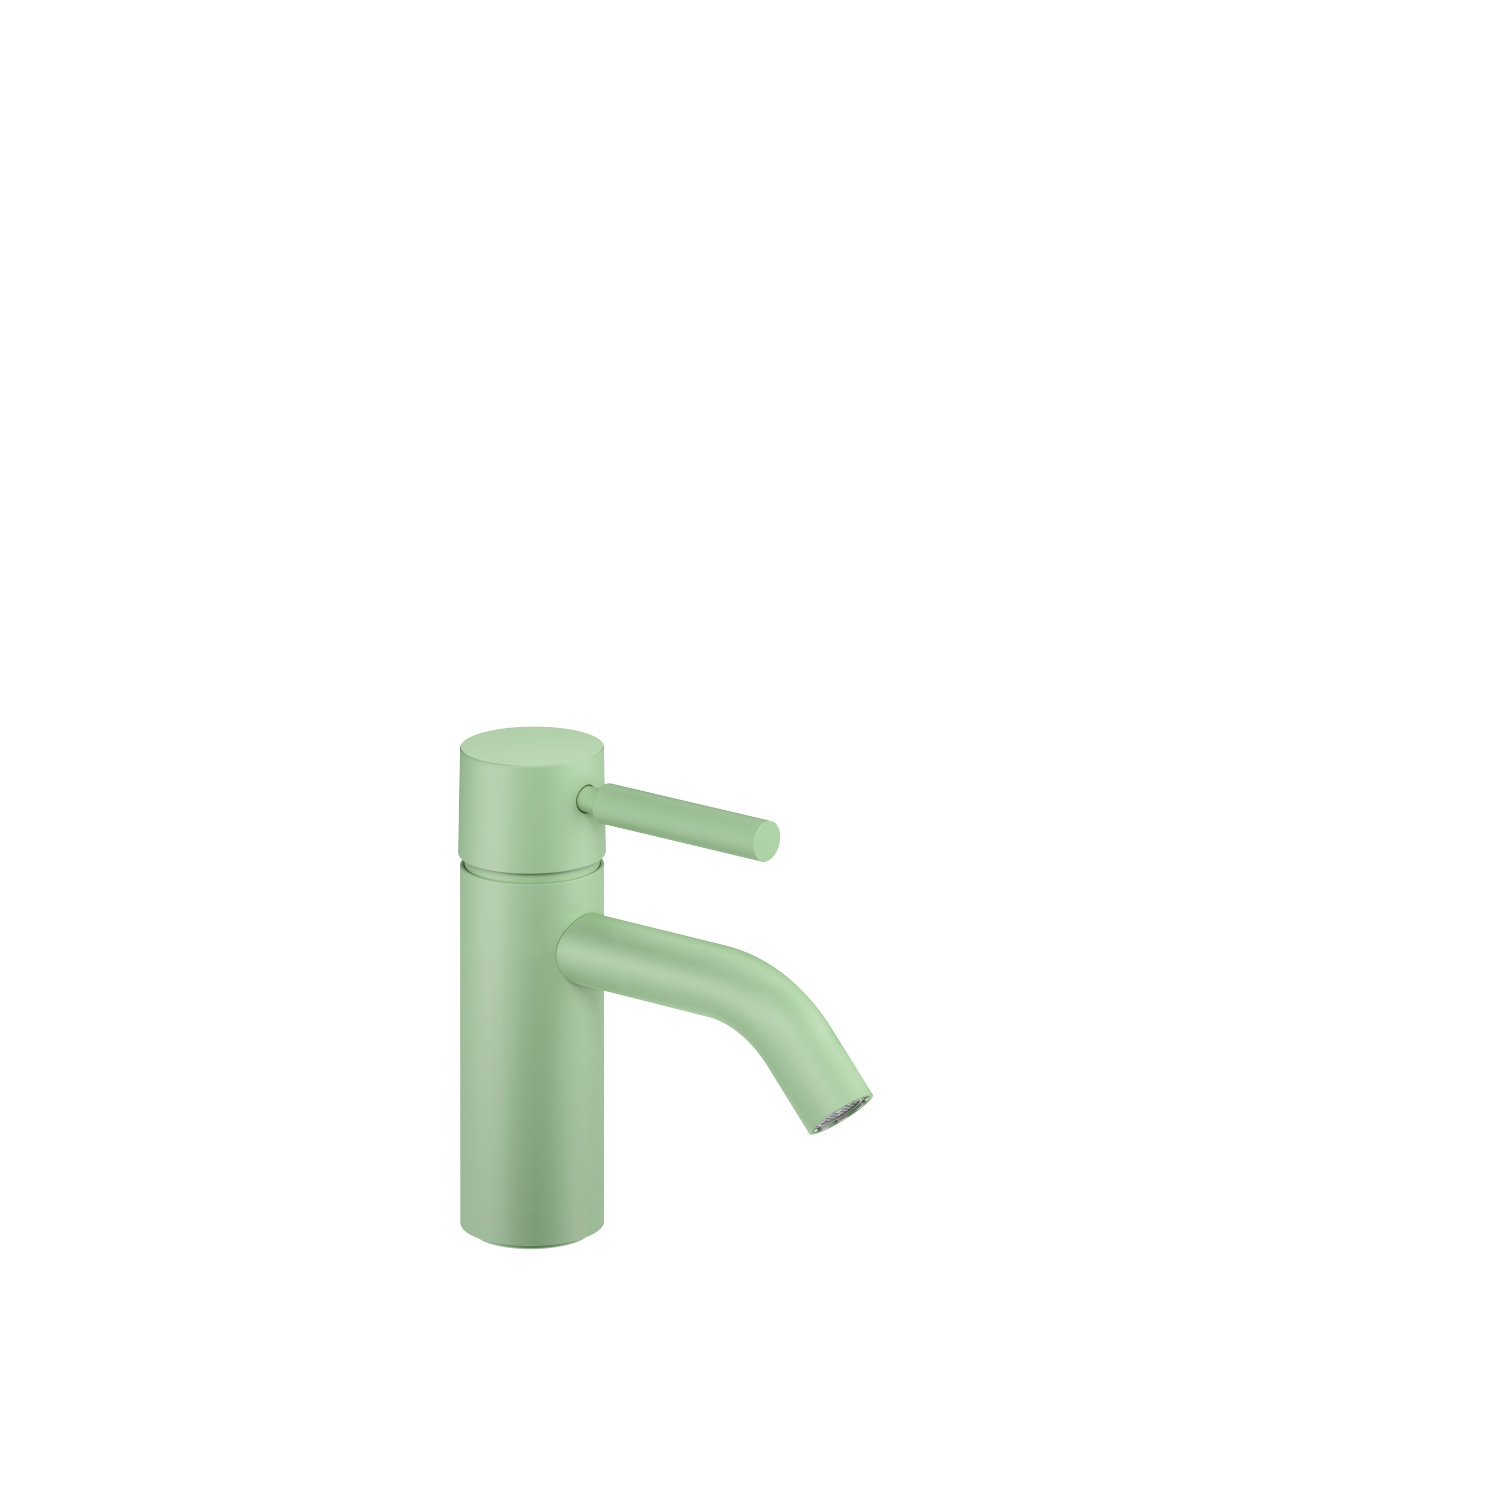 Single-lever lavatory mixer without drain - pastel green - 33 525 660-54 0010